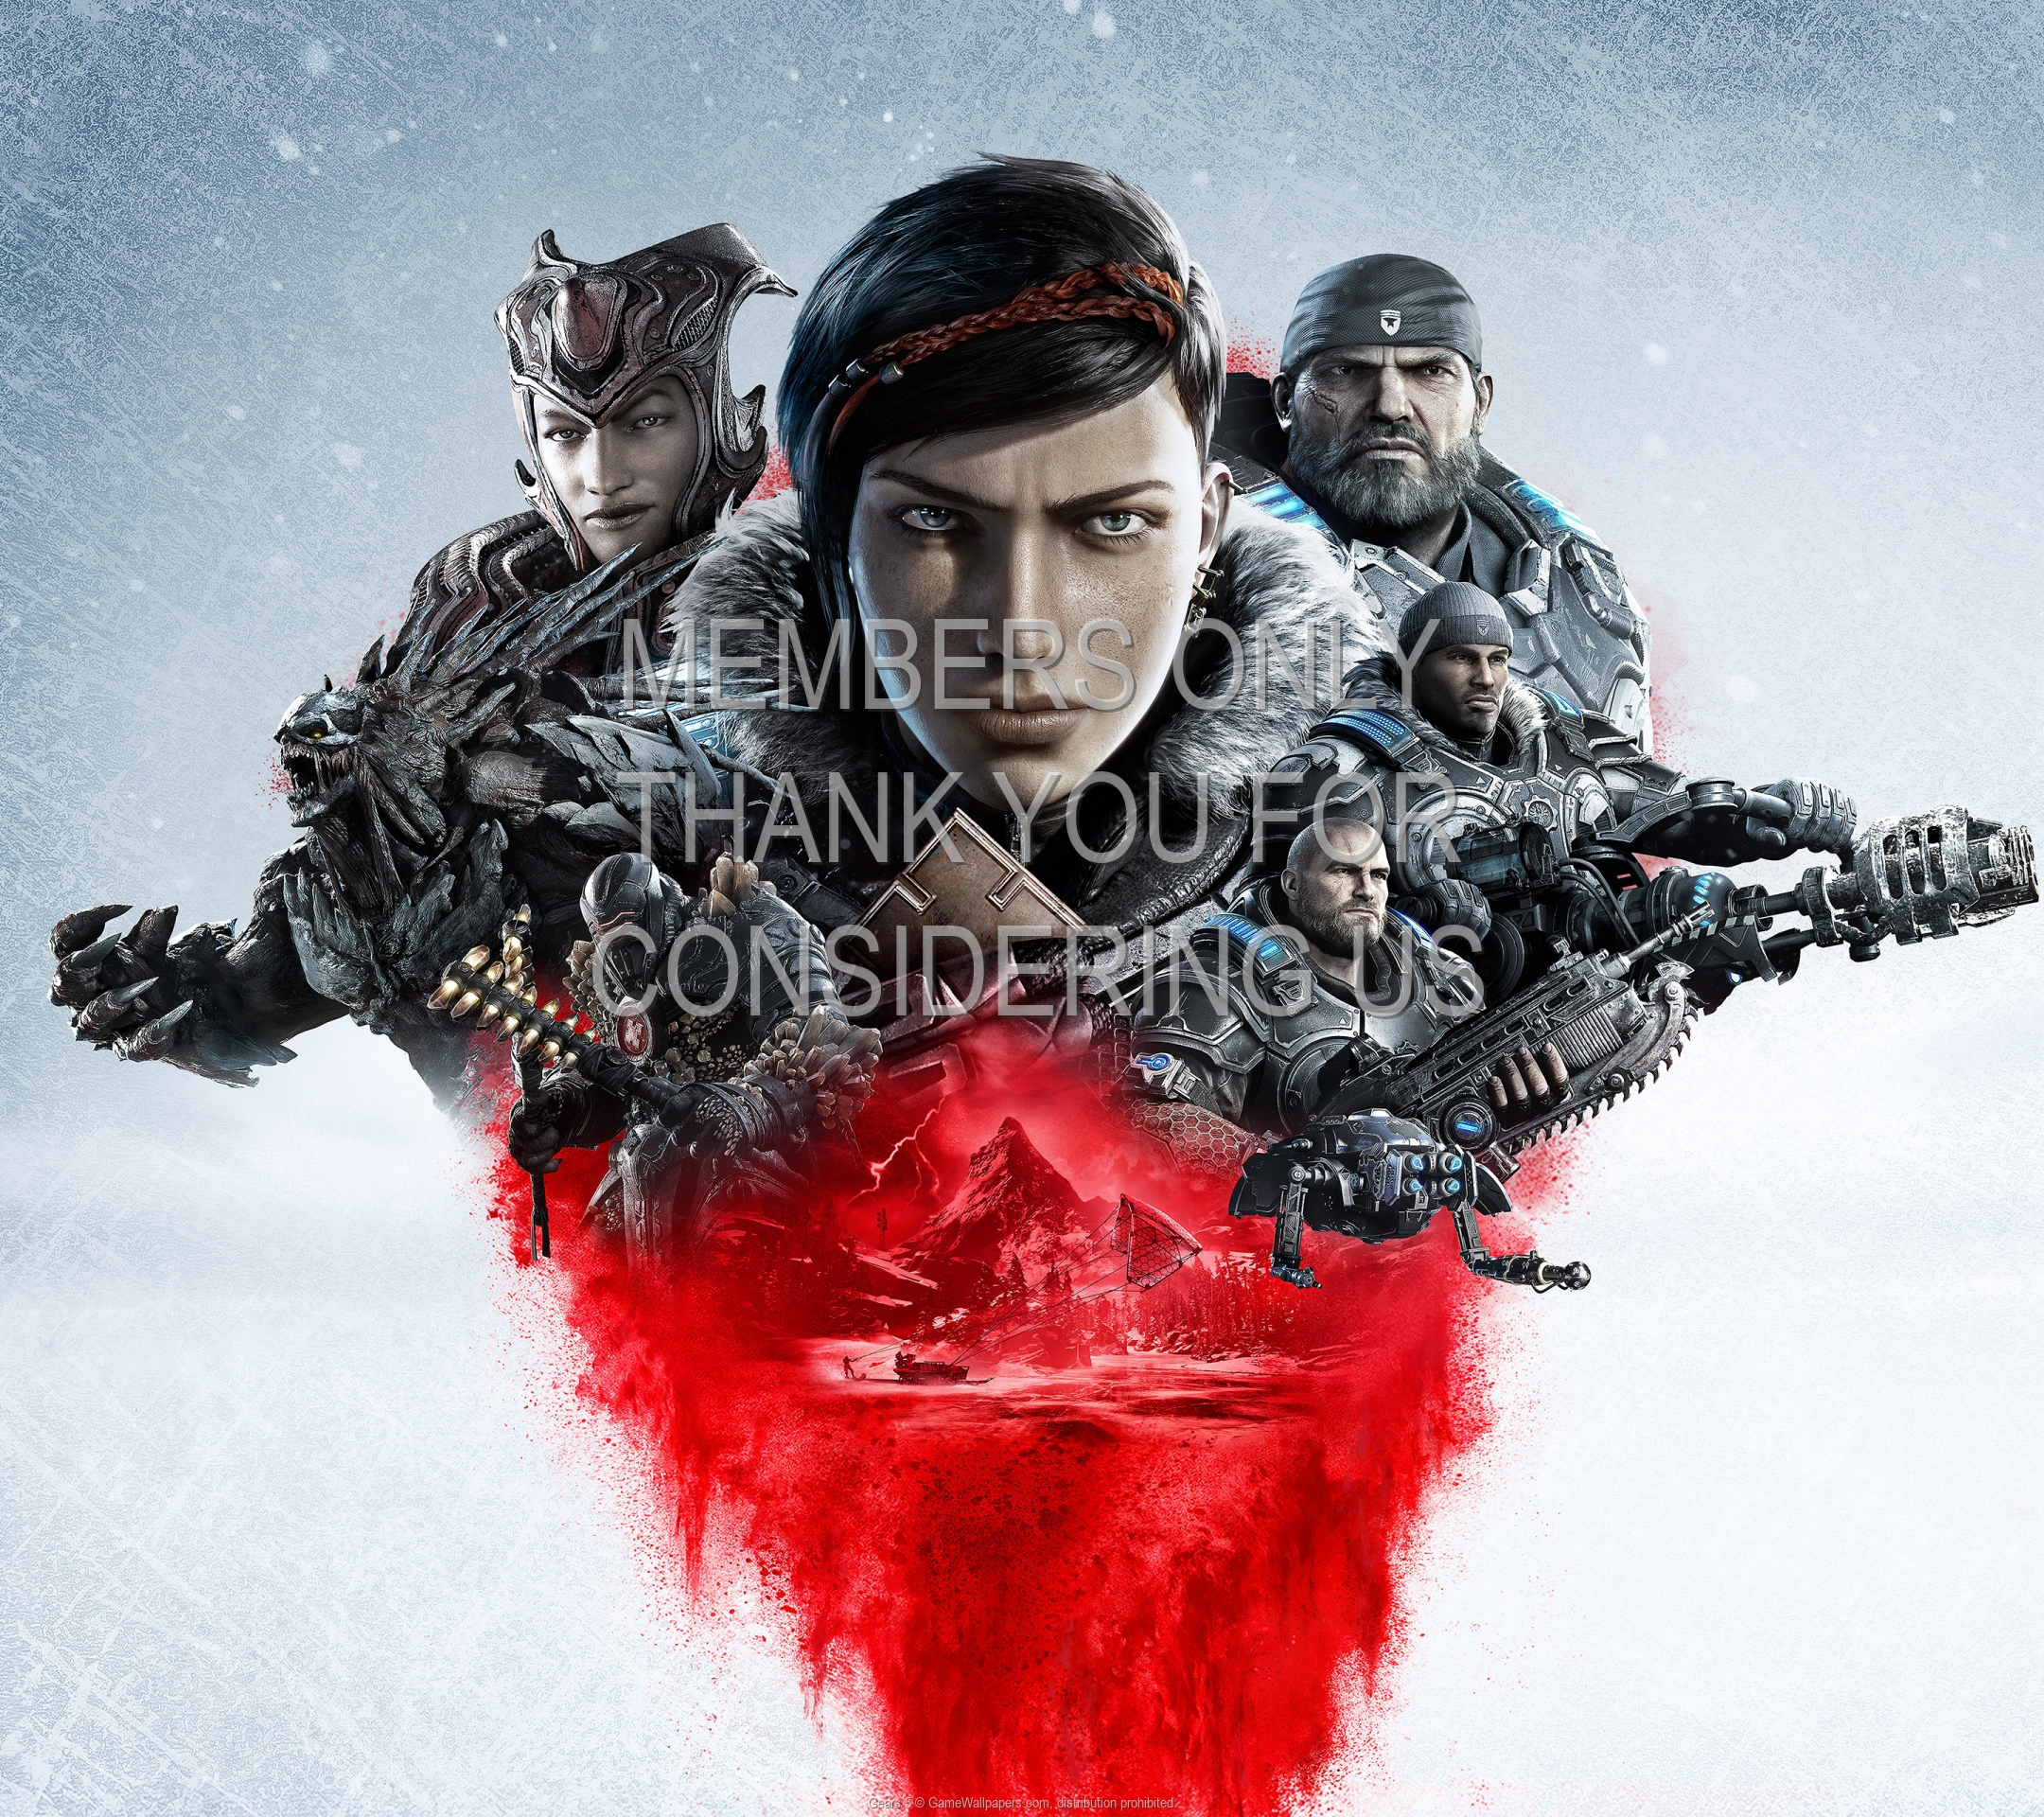 Gears 5 1920x1080 Mobile wallpaper or background 01